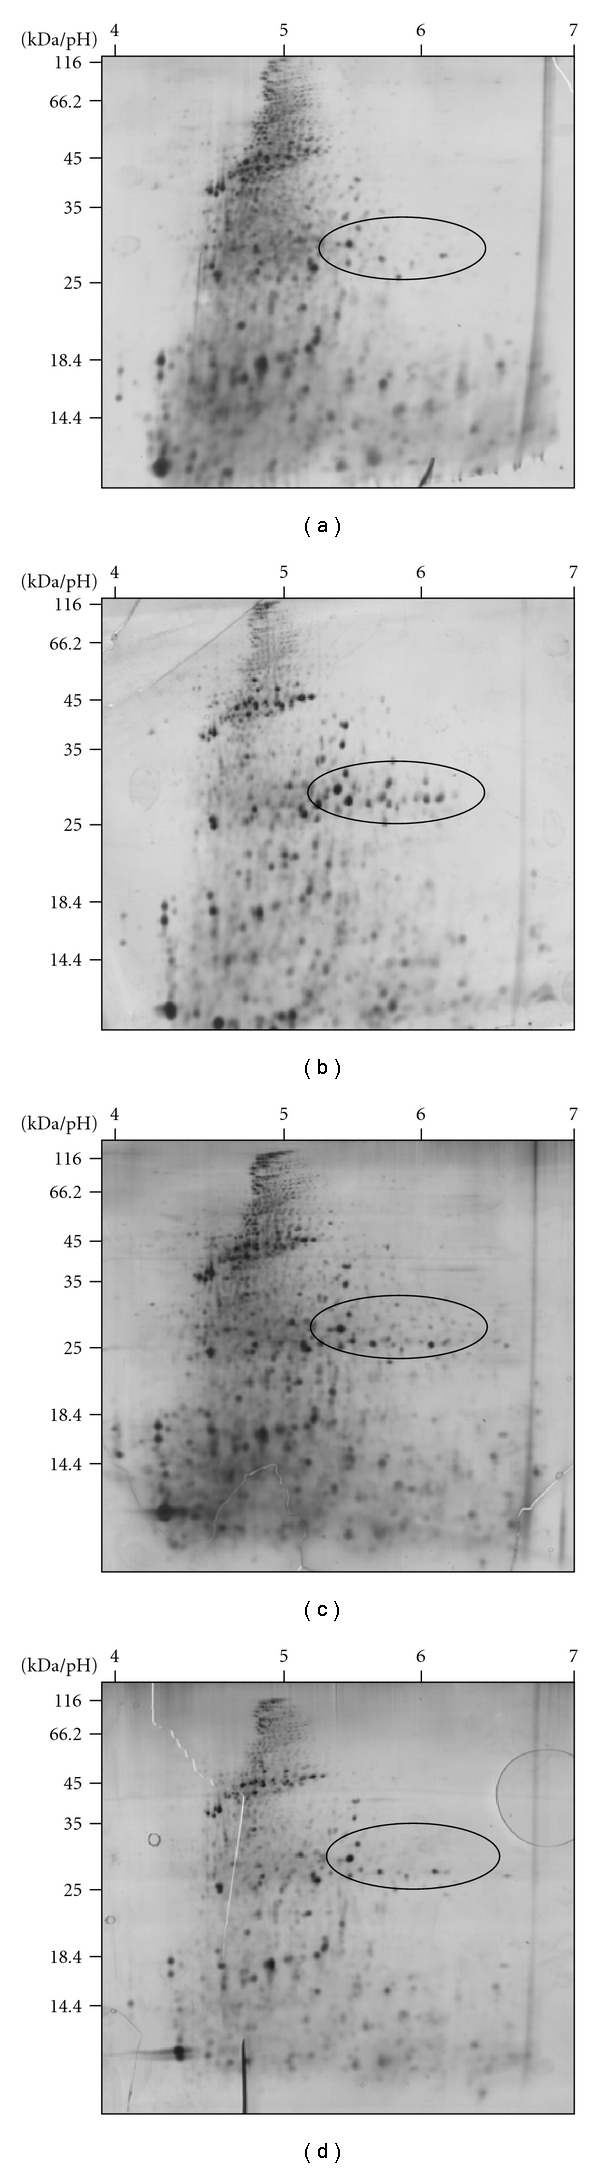 2-DE gels from proteomics experiments: (a) control conditions, (b) EC 10 treatment with Rotenone, (c), EC 10 treatment with DNOC and (d) EC 10 treatment with Diclofenac. All protein samples were separated under the same 2-DE conditions: Immobiline strips pH 4–7 in the first and 14% PAA gels in the second dimension.